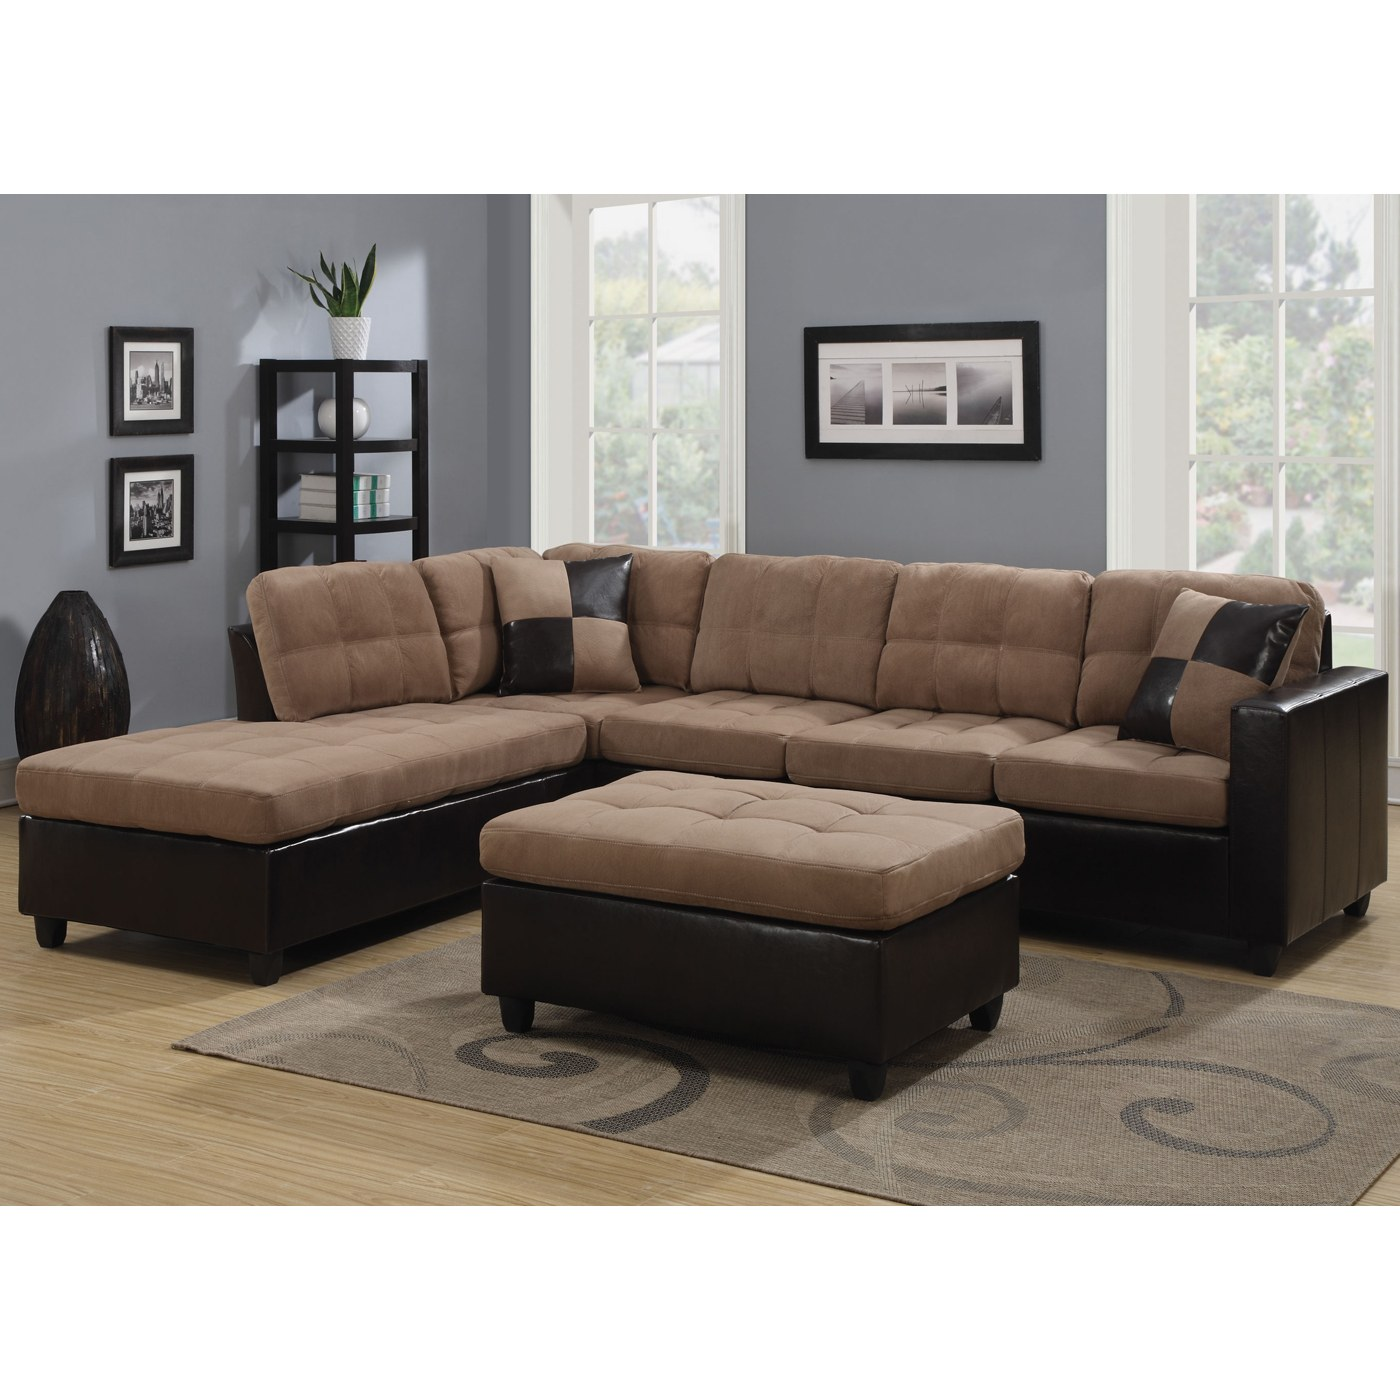 mallory microfiber sectional with tan microfiber dark brown leather like vinyl upholstery by coaster fine furniture